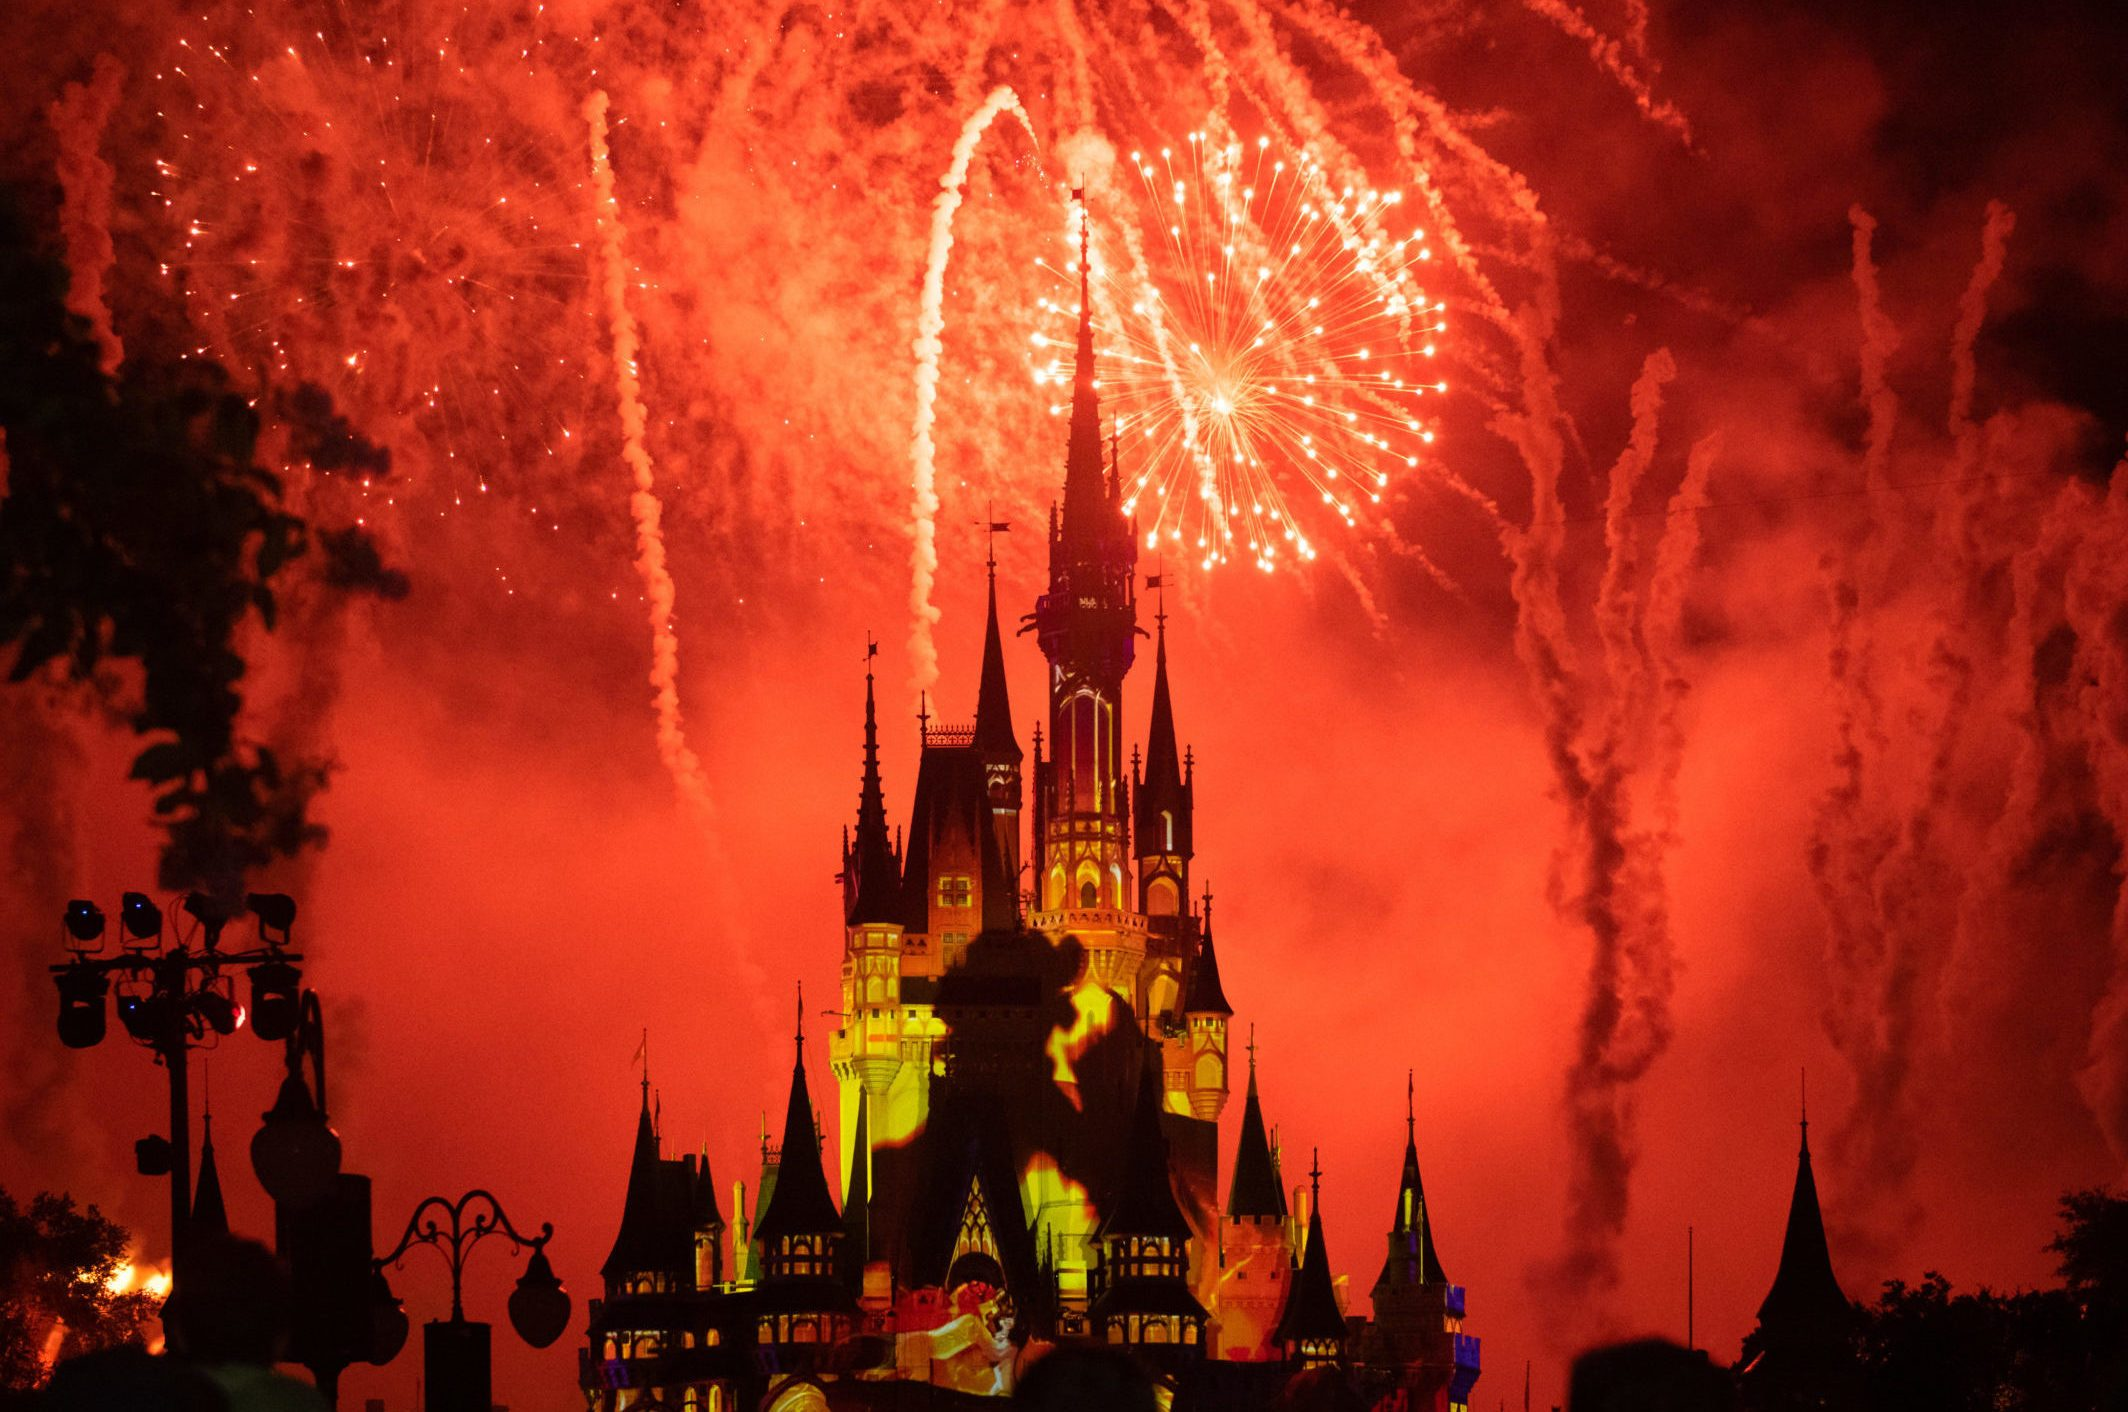 Red fireworks and yellow strobe lights illuminating the...